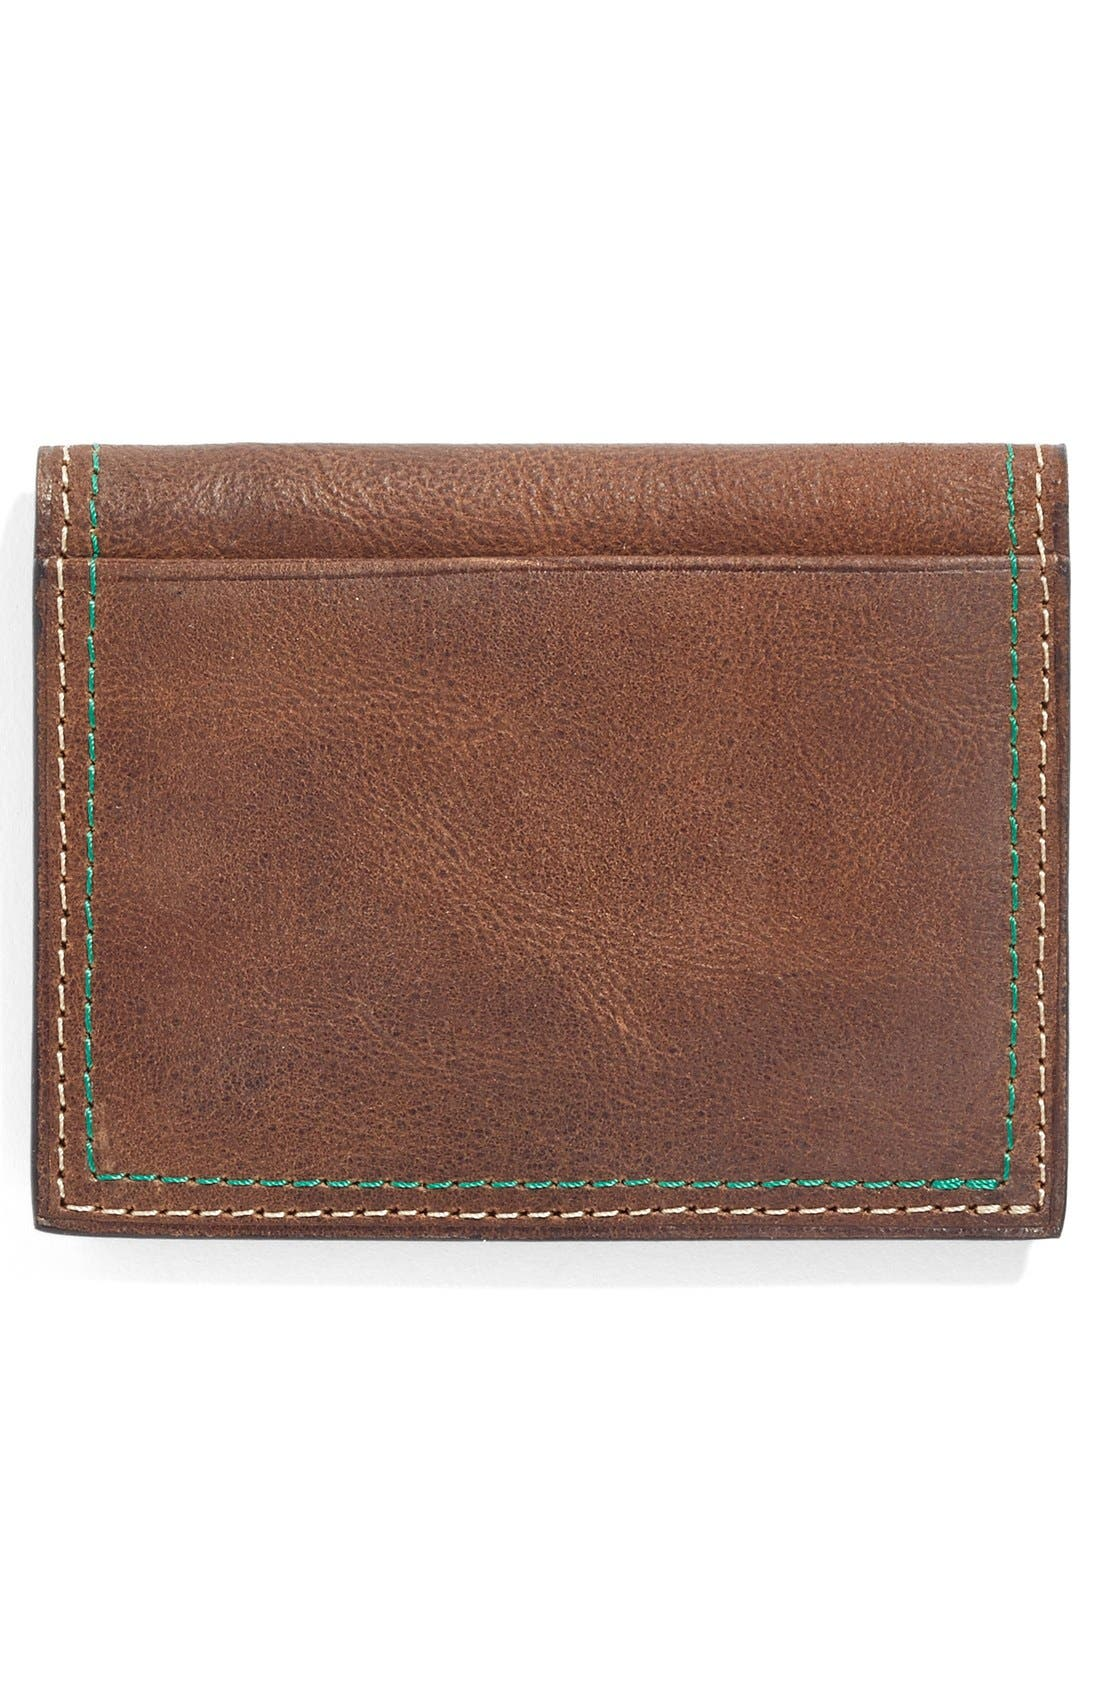 Water Buffalo Leather Card Case,                             Alternate thumbnail 3, color,                             200